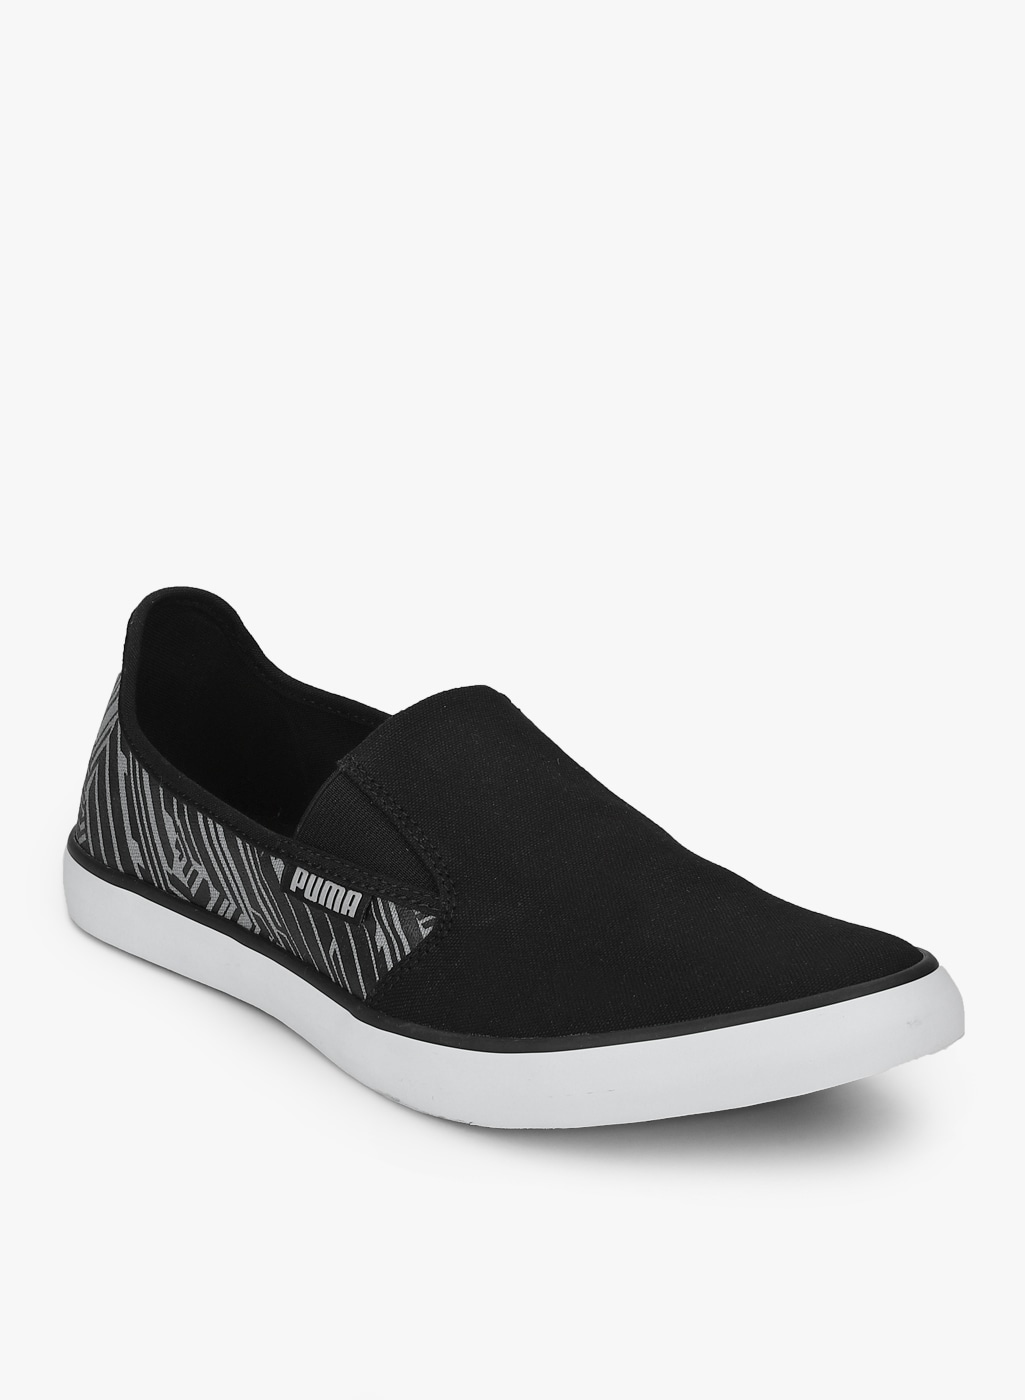 e957f9640bf Puma Slip On Shoes - Buy Puma Slip On Shoes online in India